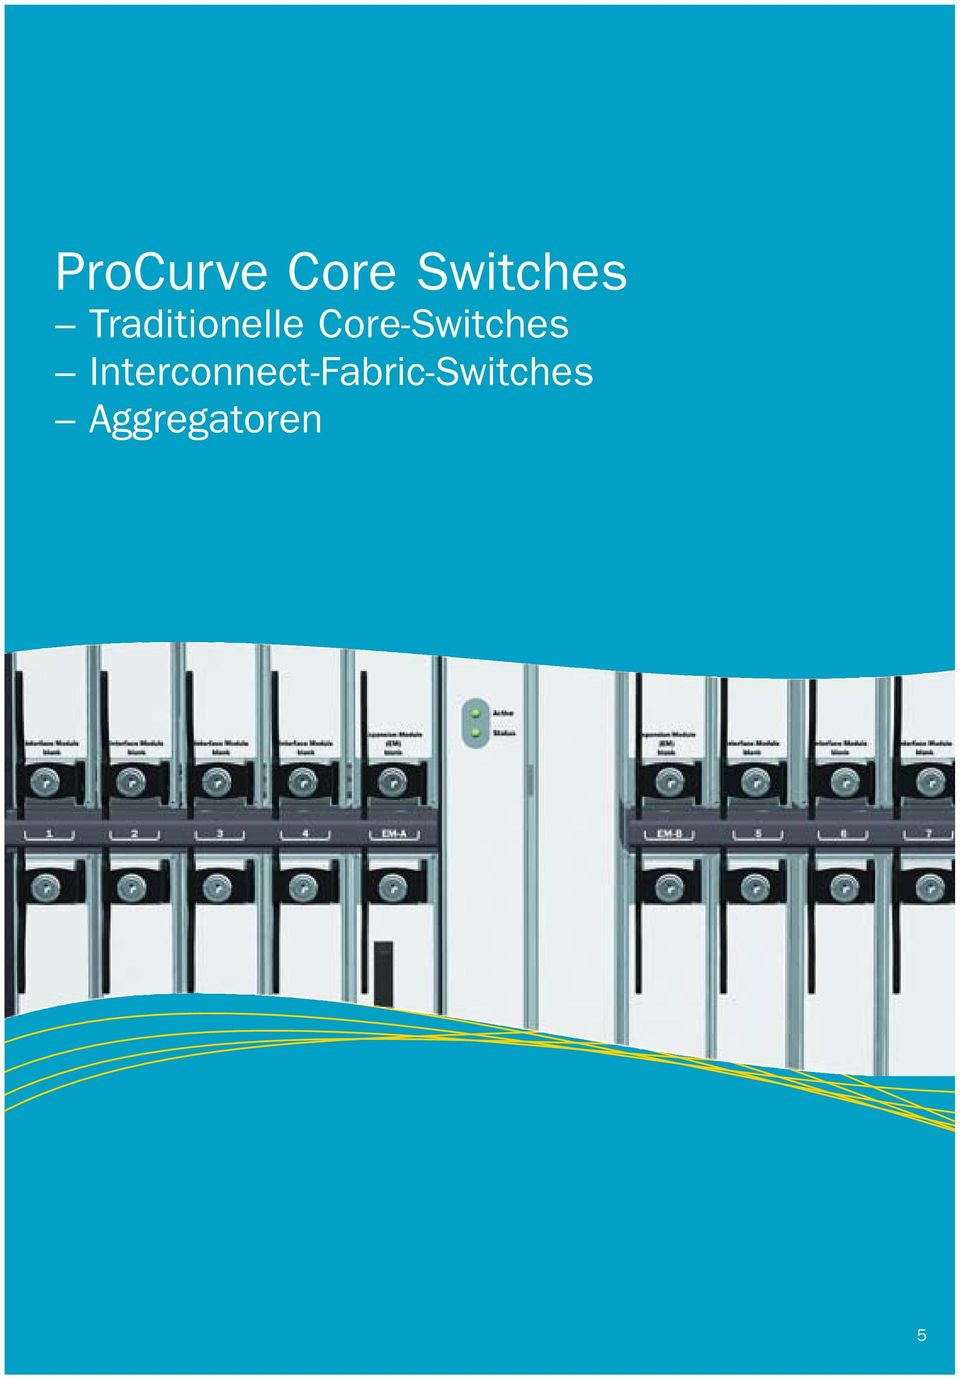 Core-Switches